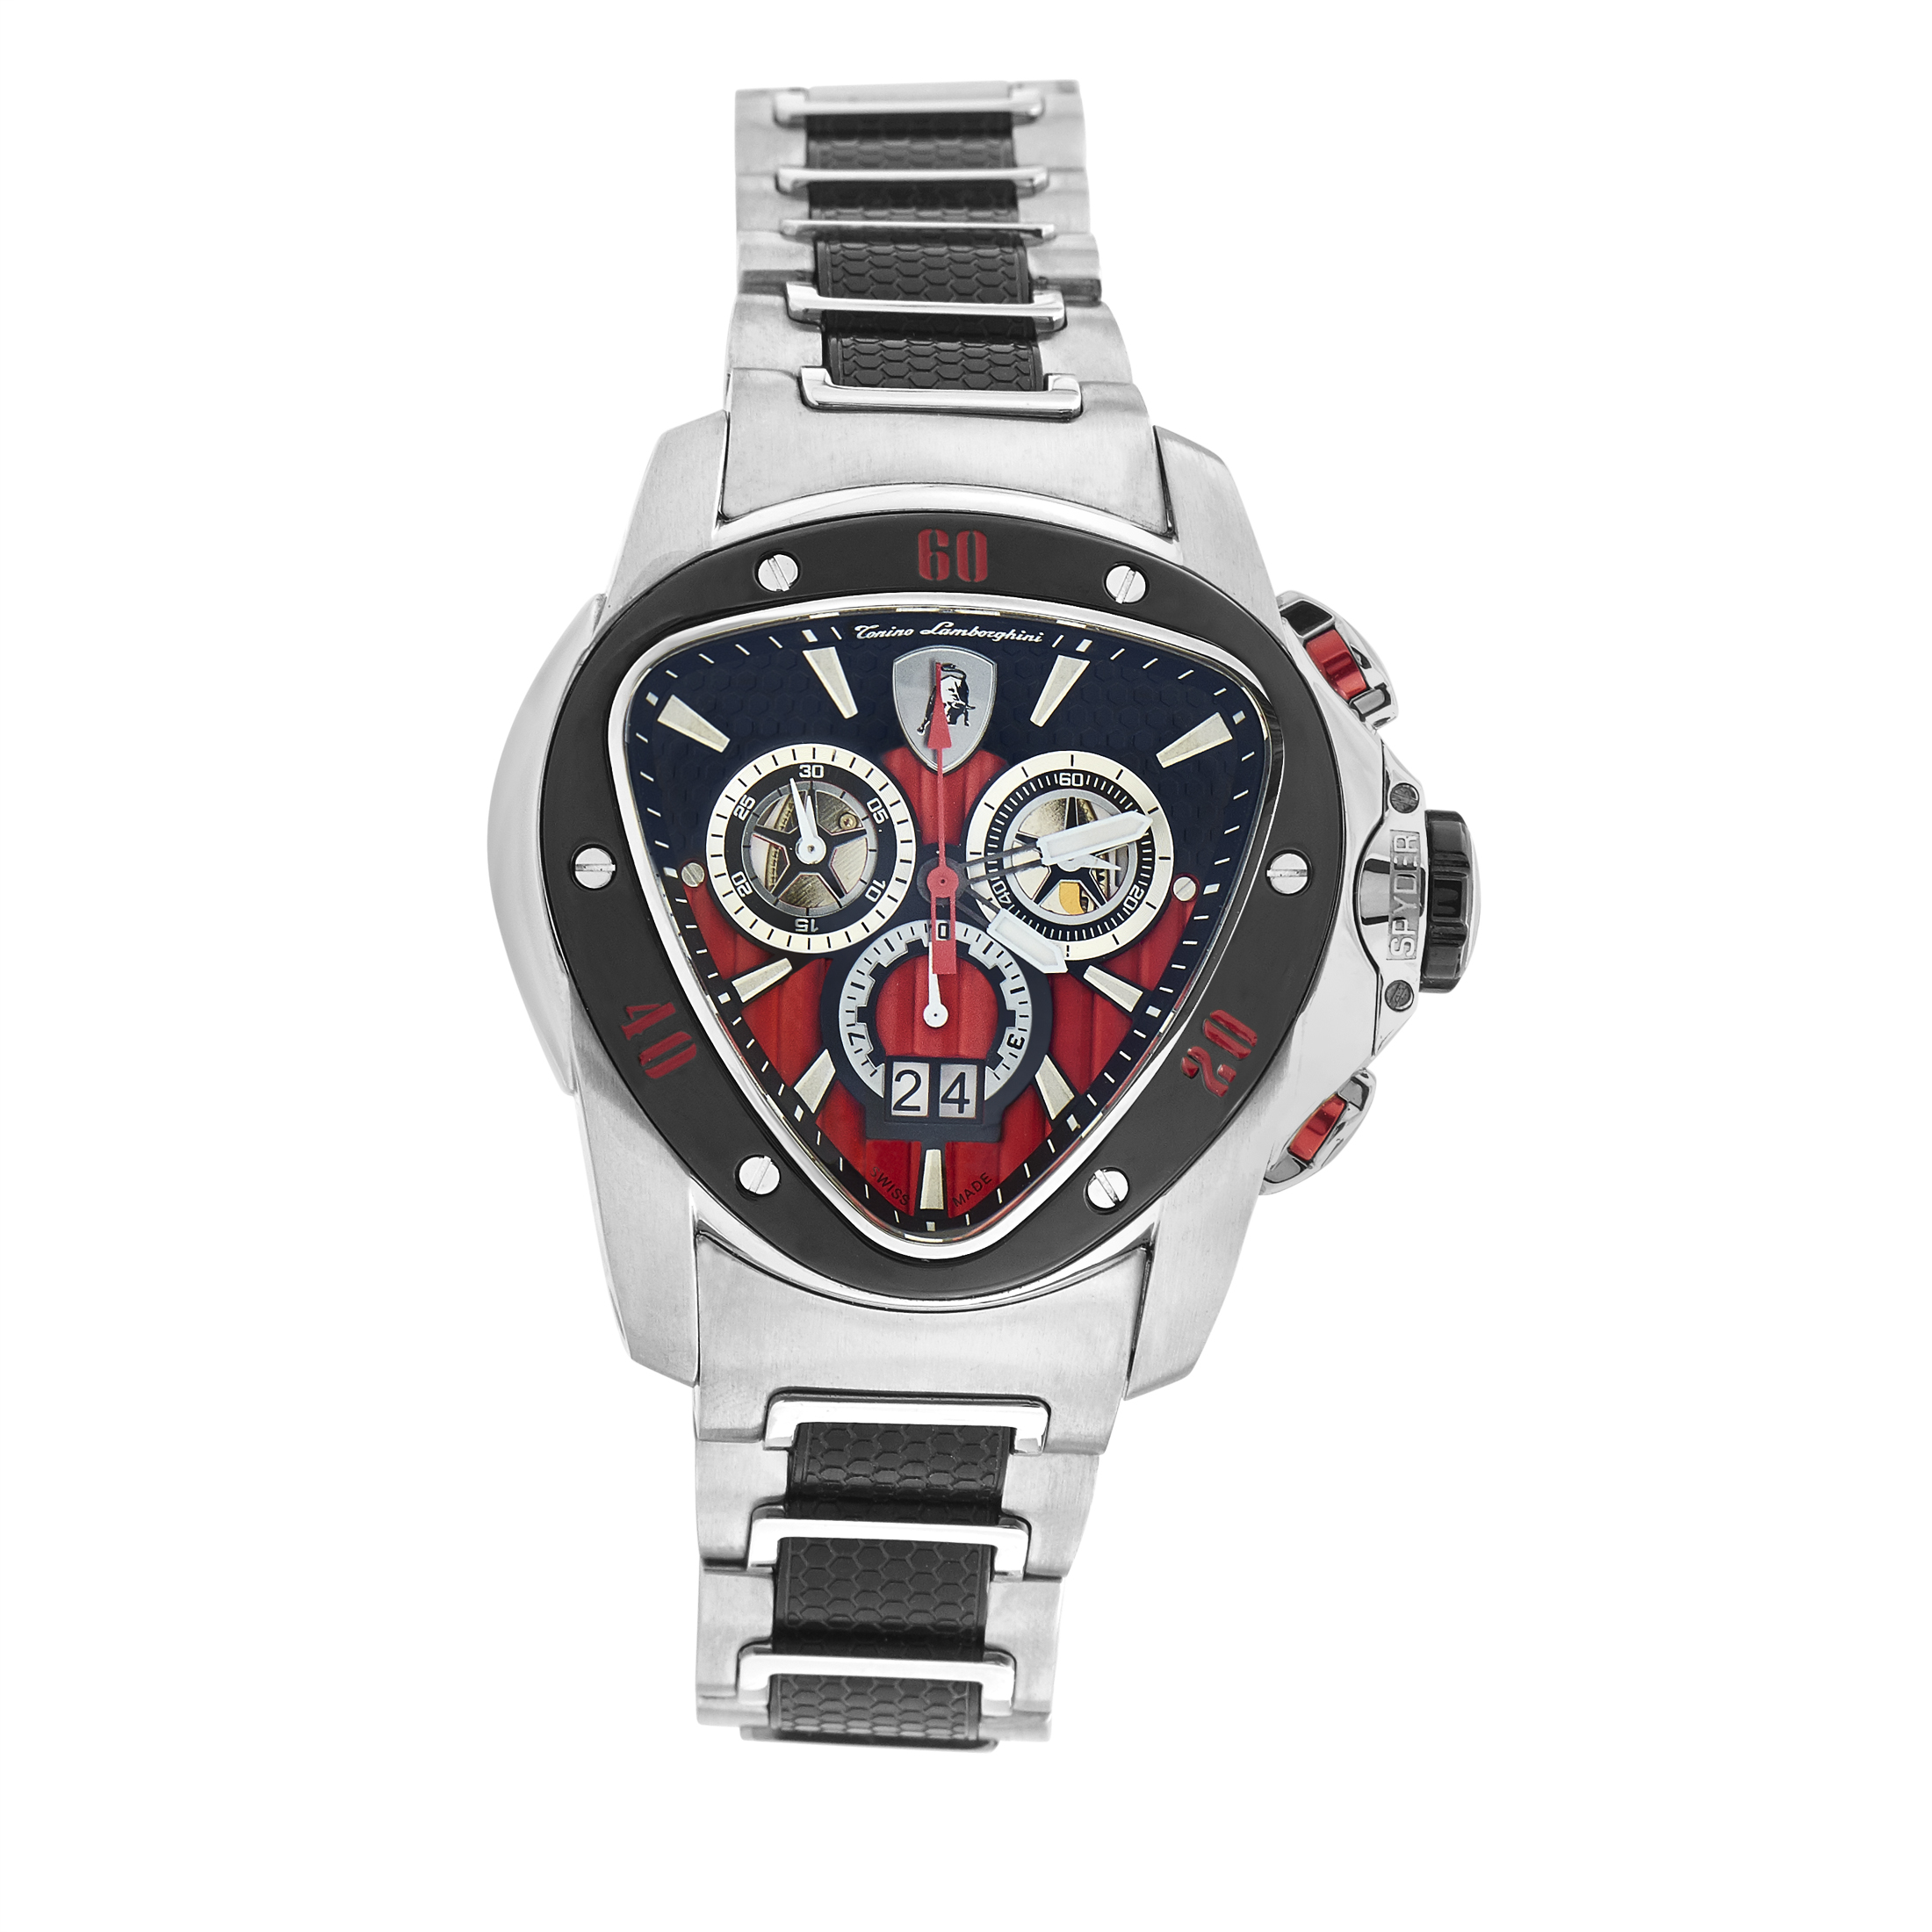 Spyder Men's Quartz Chronograph Watch 1100 1115